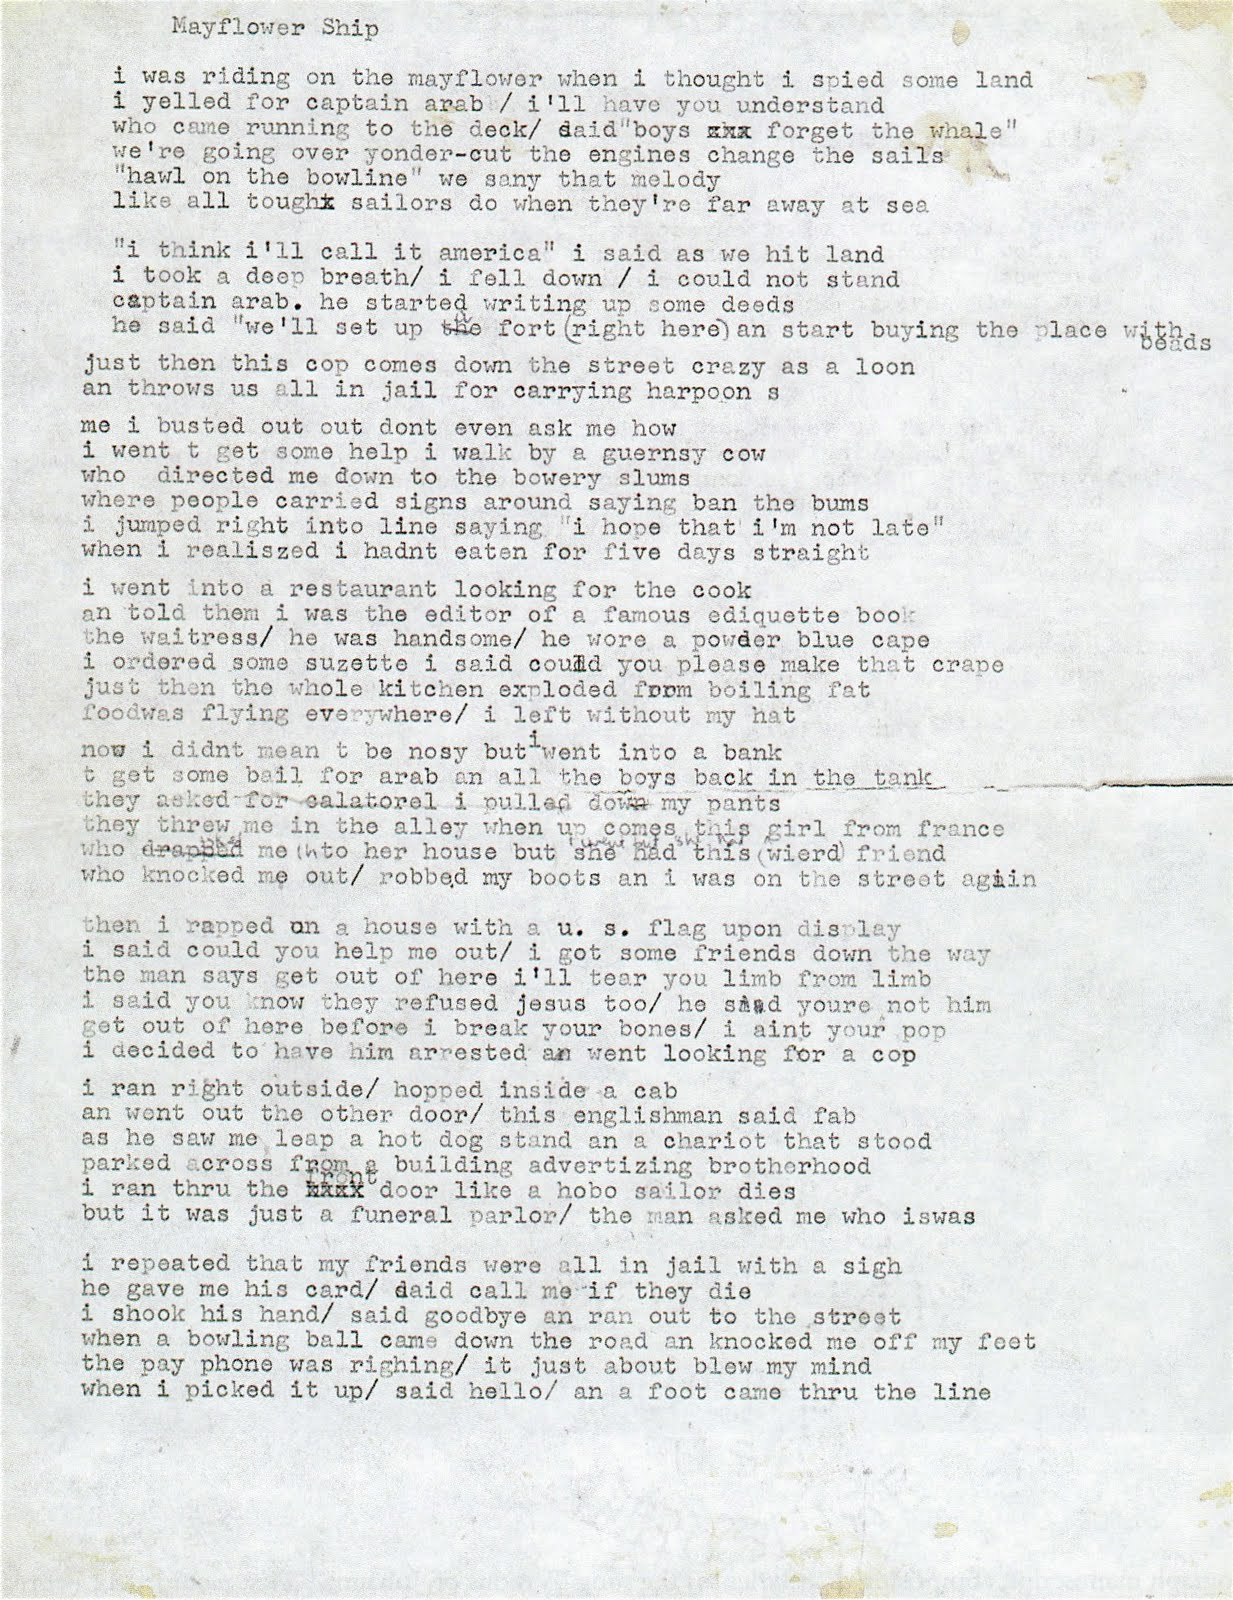 bob dylan essay Some notes on style lyrics are an important part of dylan's music his poetic ability, unpolished and unconventional vocal style and the candidness of his verses.